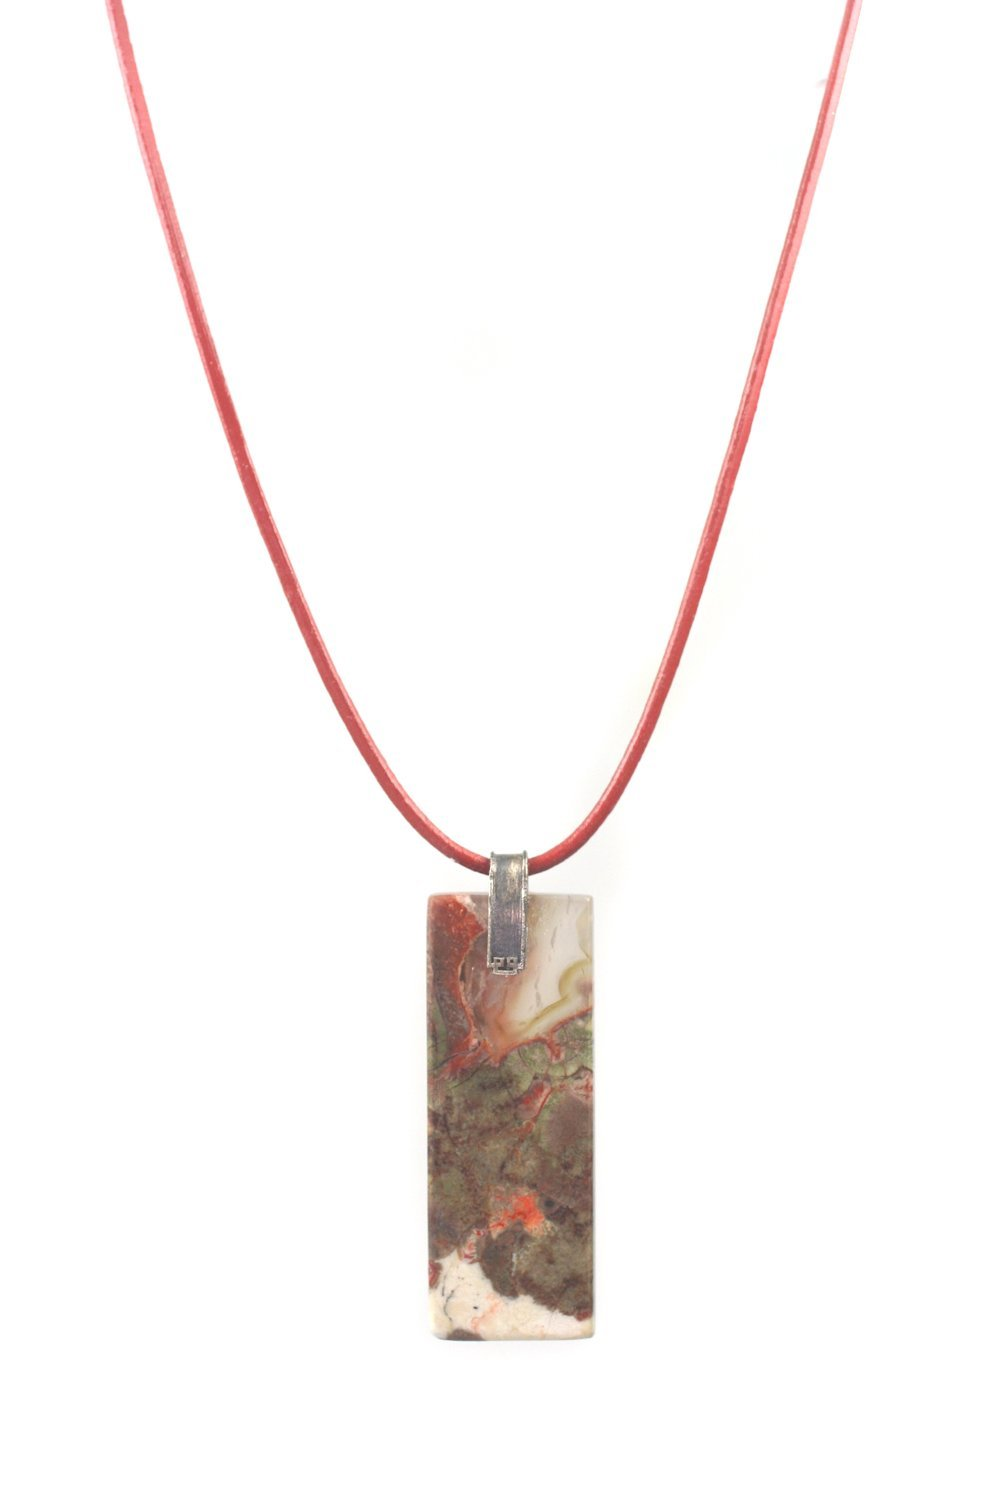 Price reduction one of kind unique necklace jaspers man Memphis Mall pendant